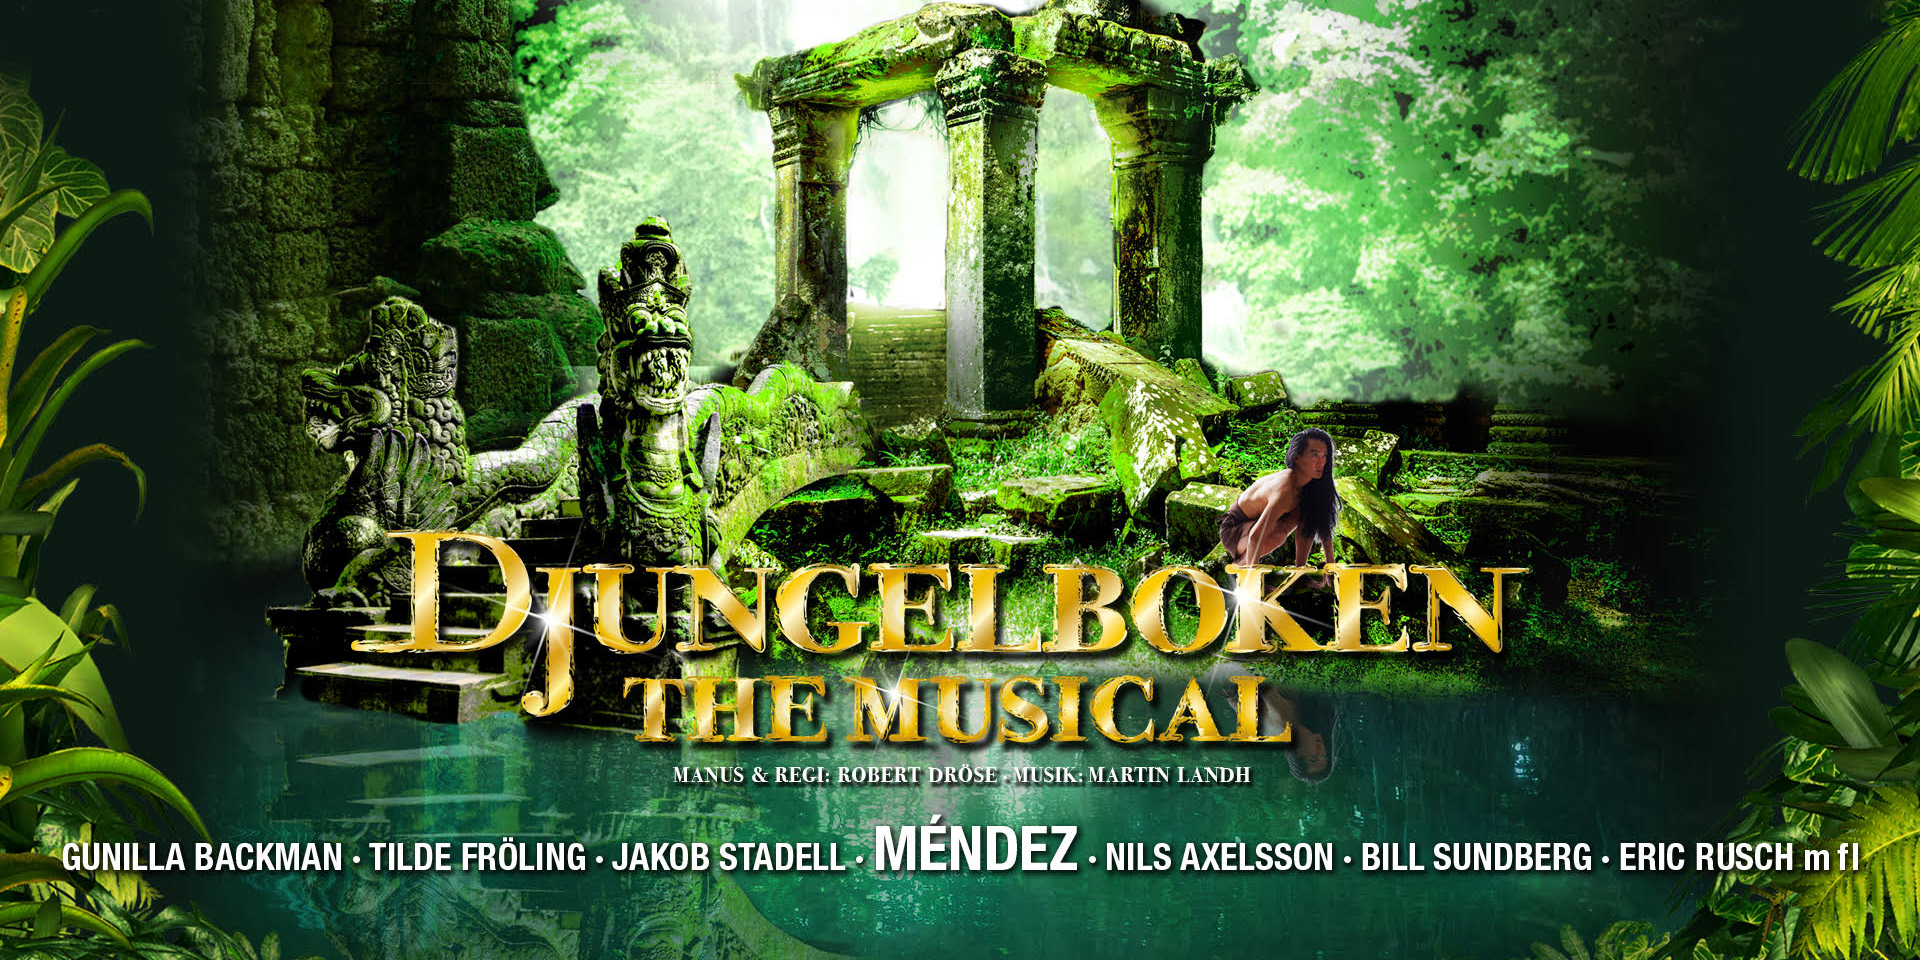 Djungelboken – The Musical